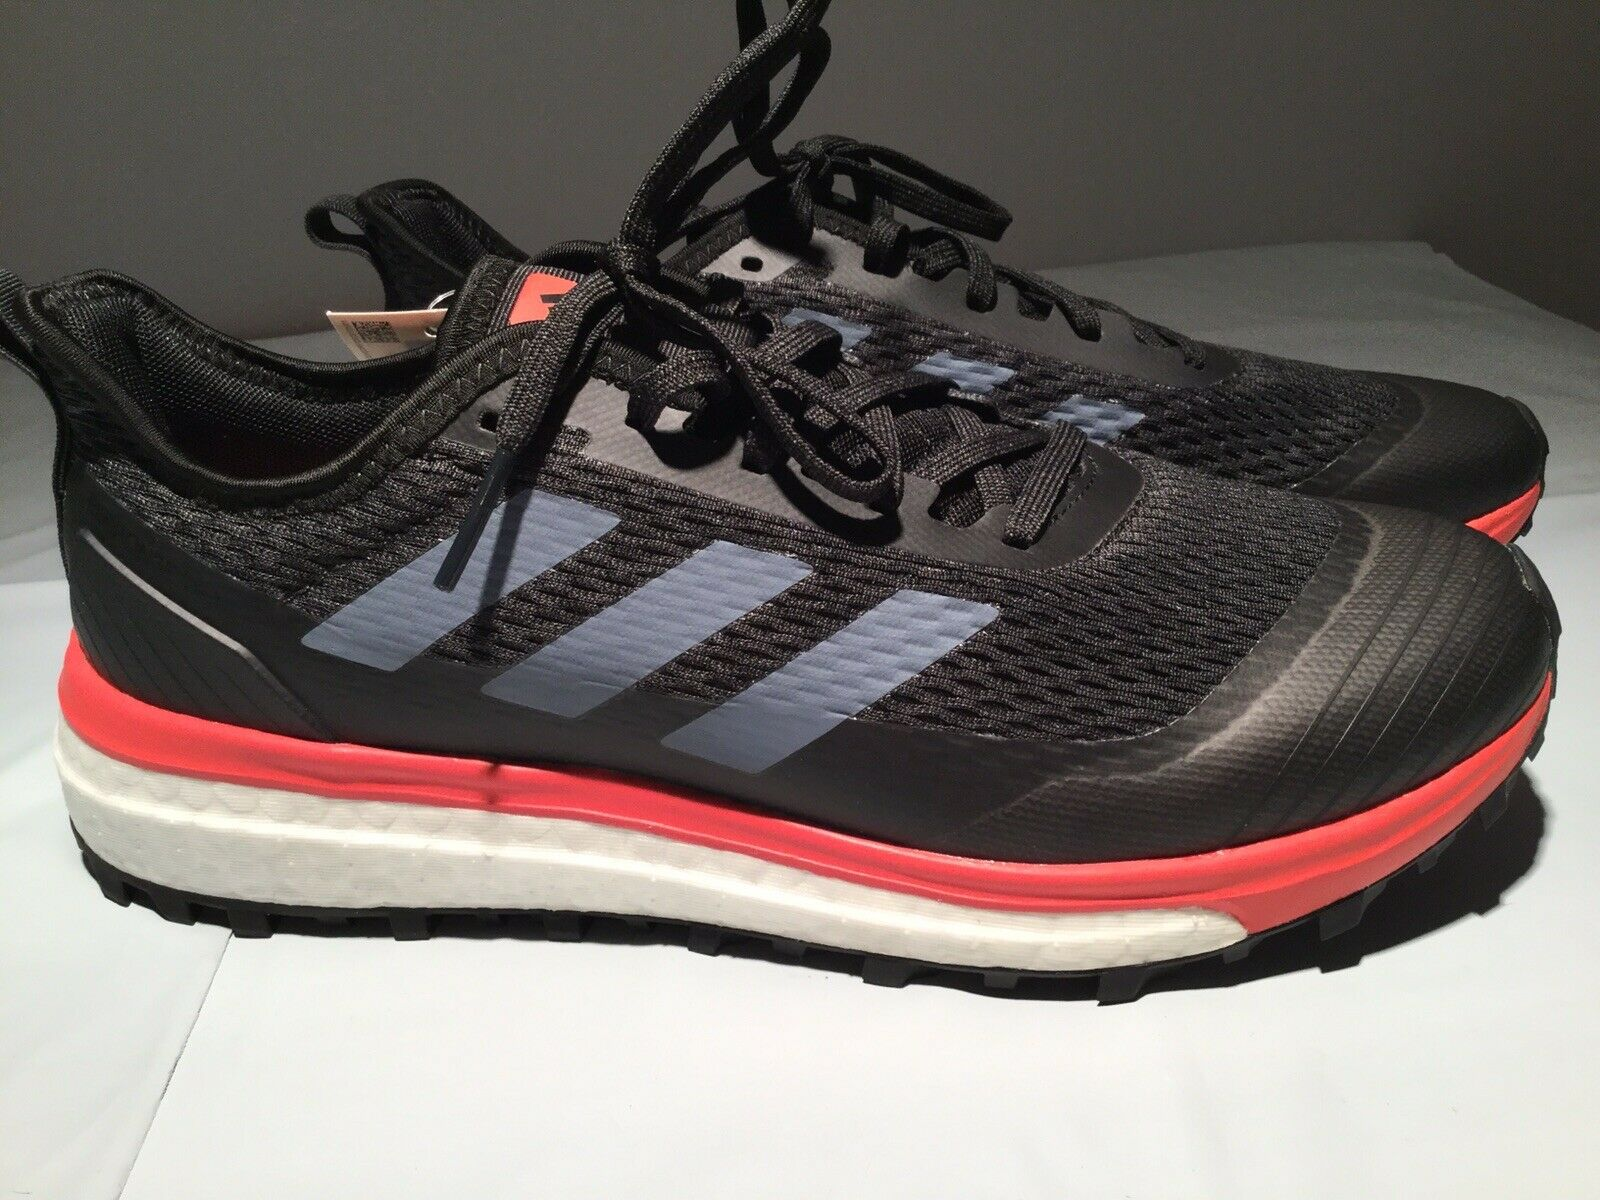 Adidas Response Trail Boost CP8690 Running shoes Women Running shoes Size 8.5